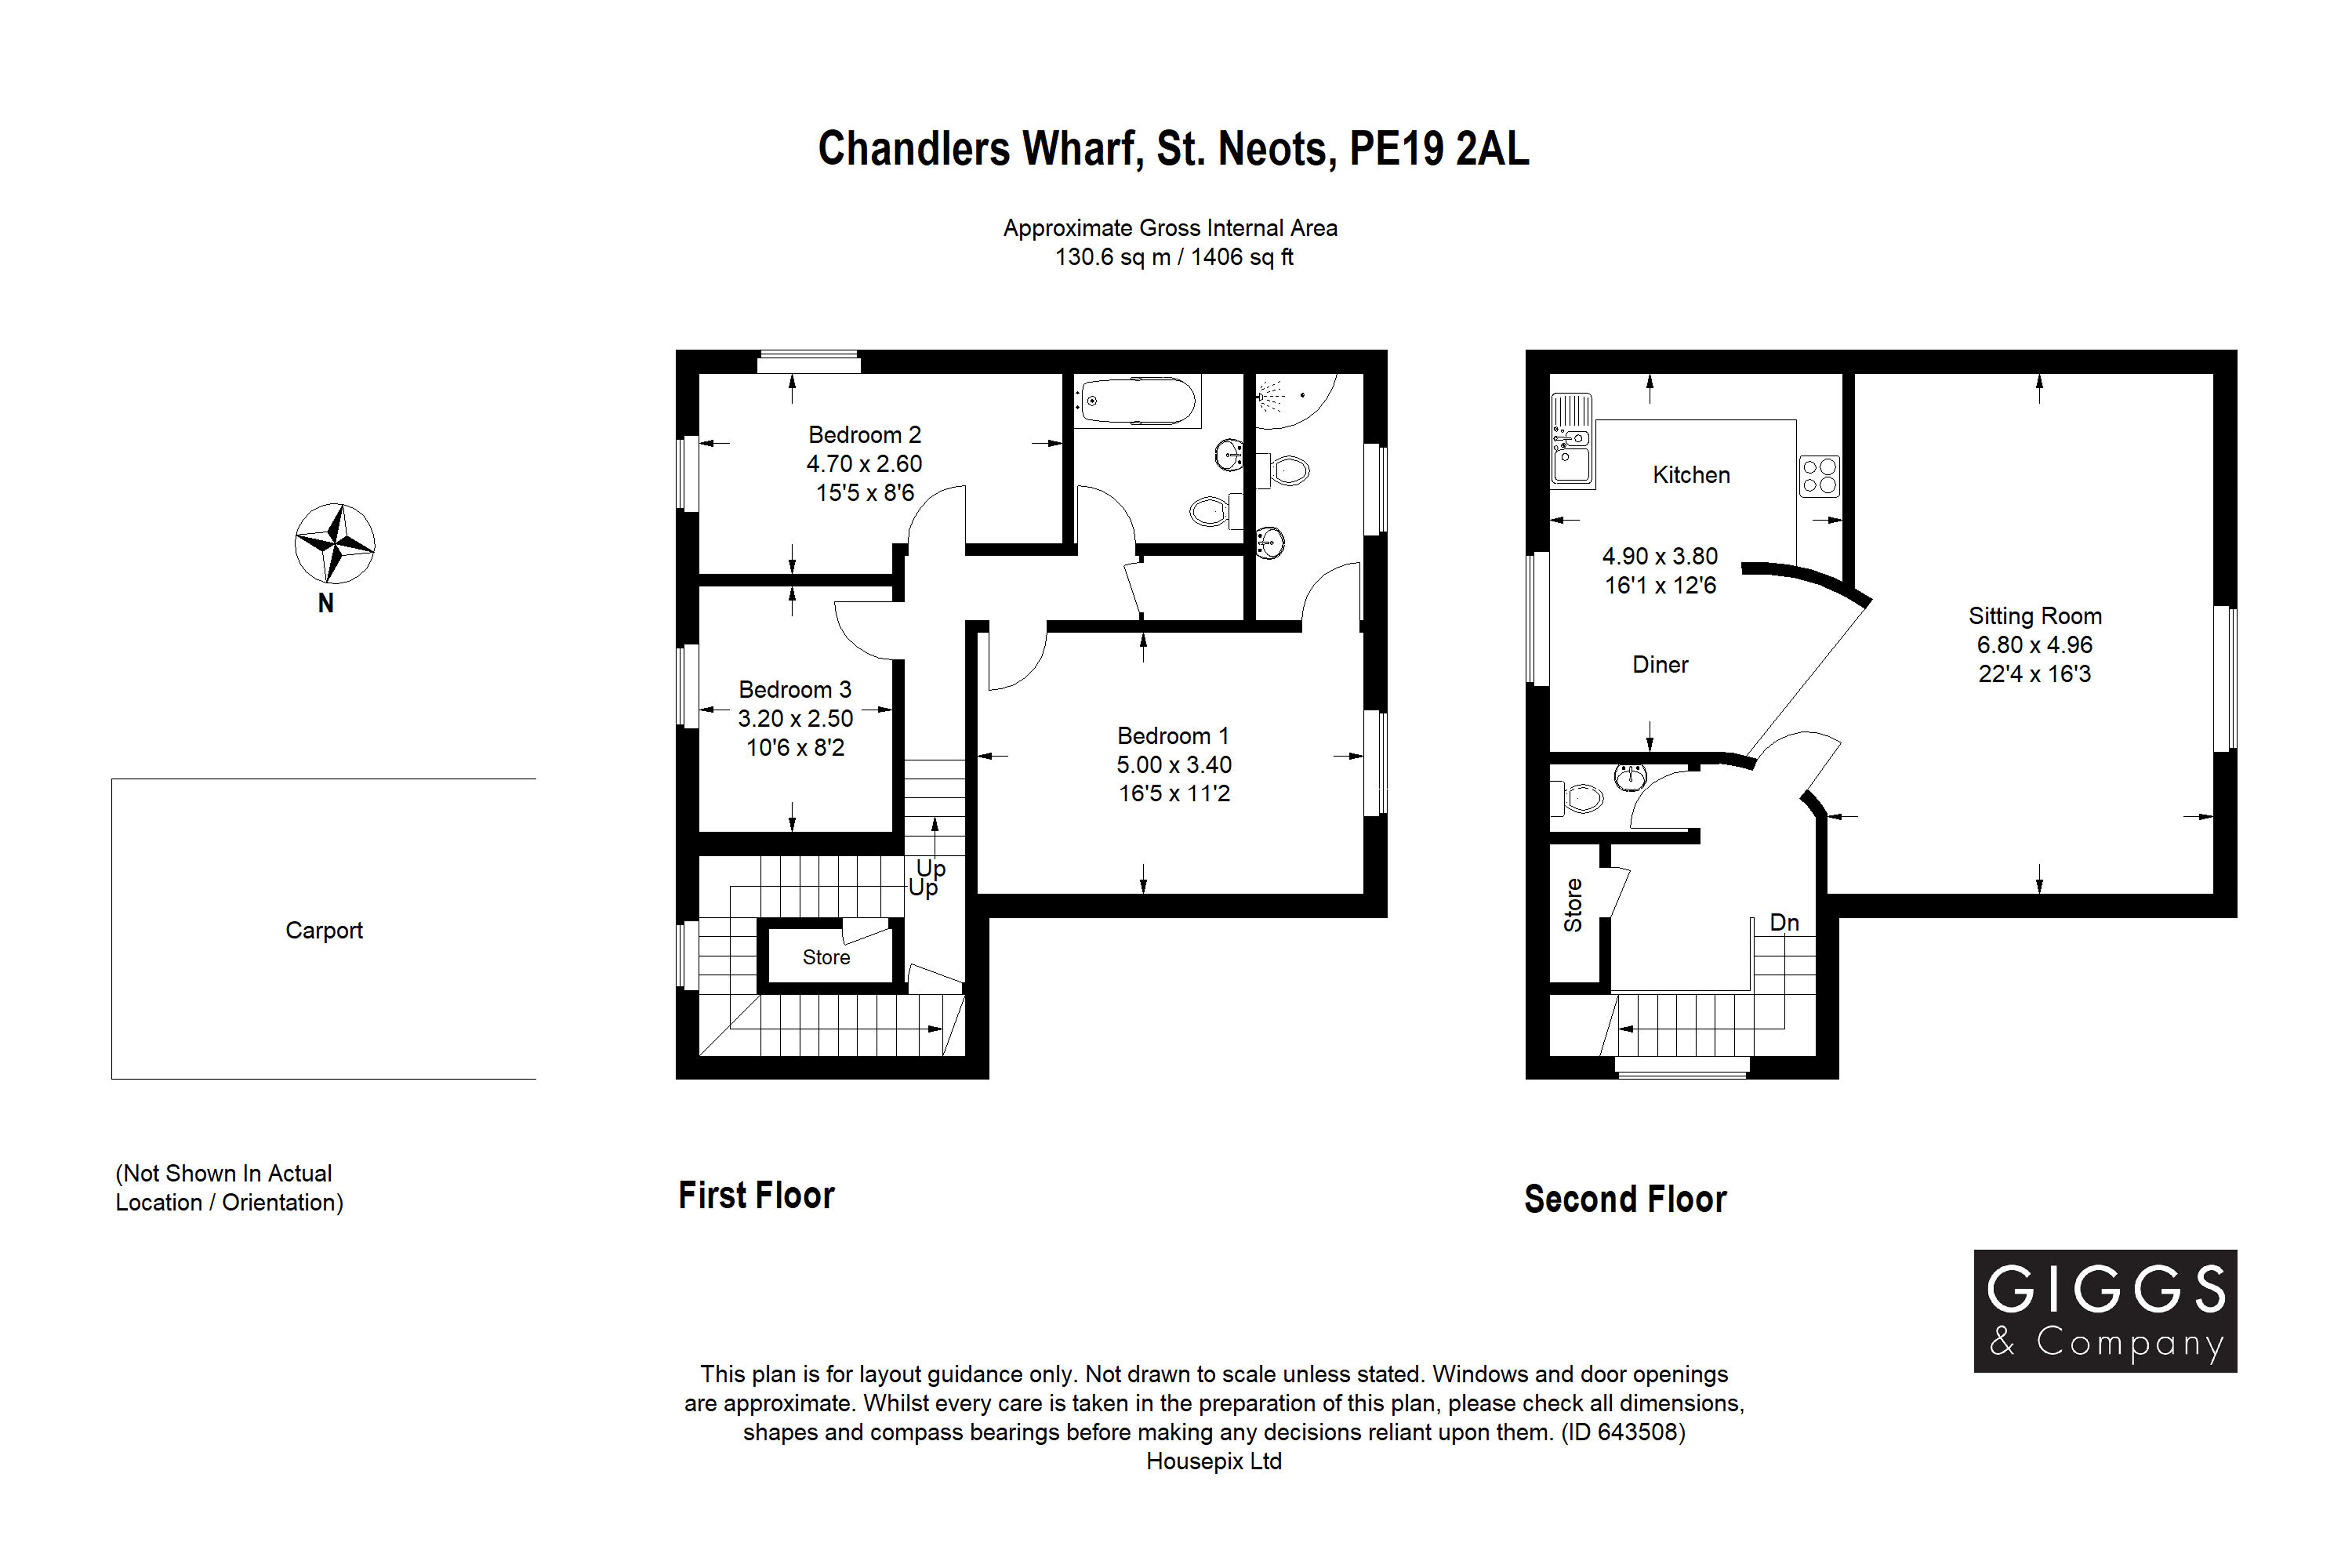 3 bed apartment for sale in Chandlers Wharf, St. Neots - Property Floorplan